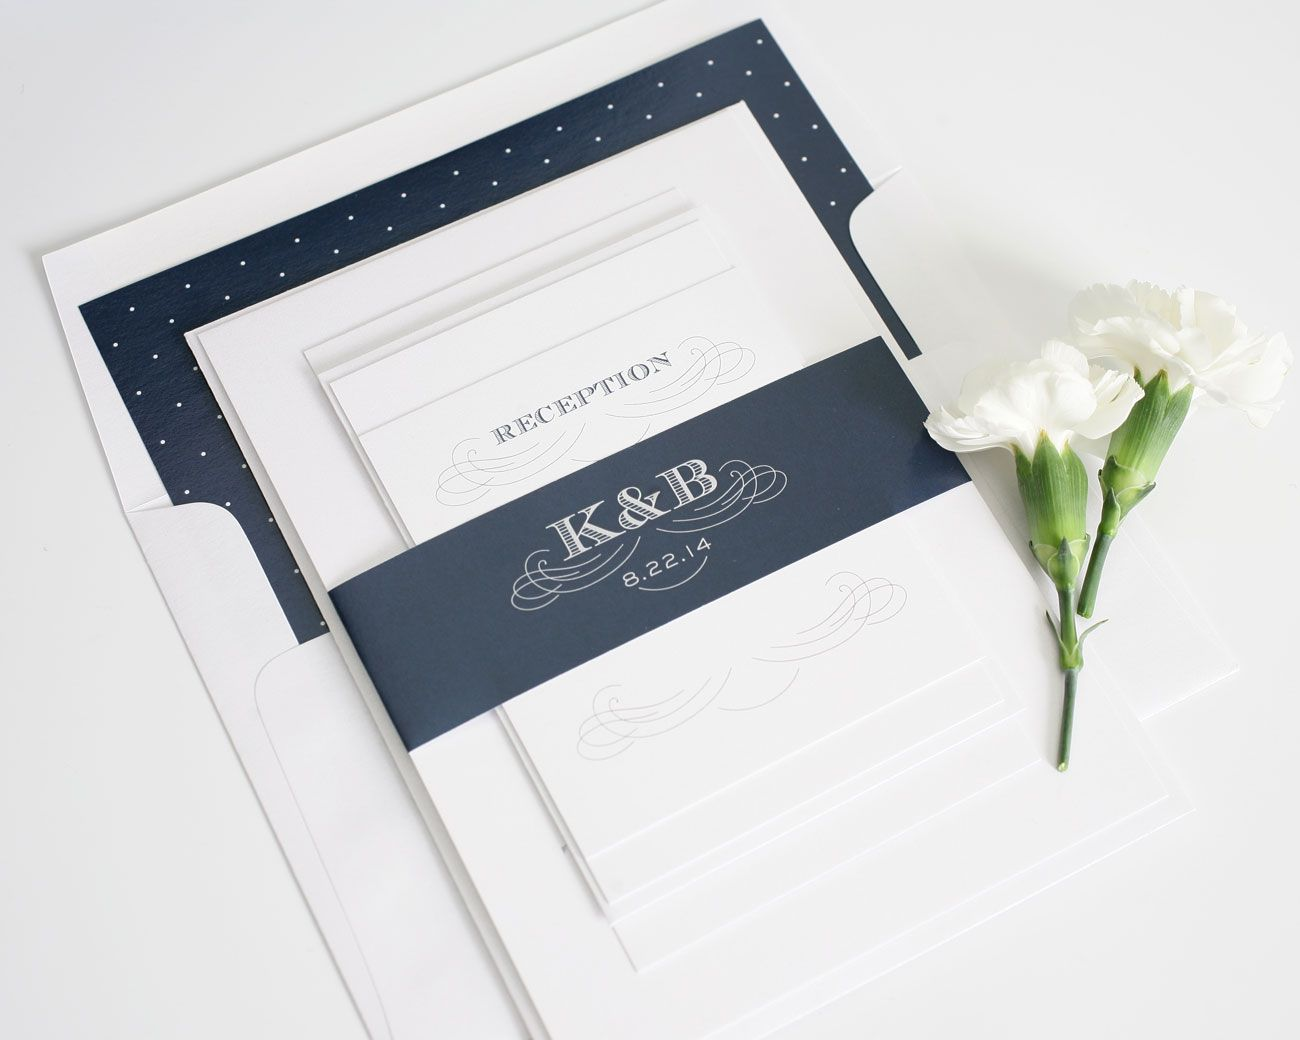 Antique Monogram Wedding Invitations Navy Weddings Monograms And